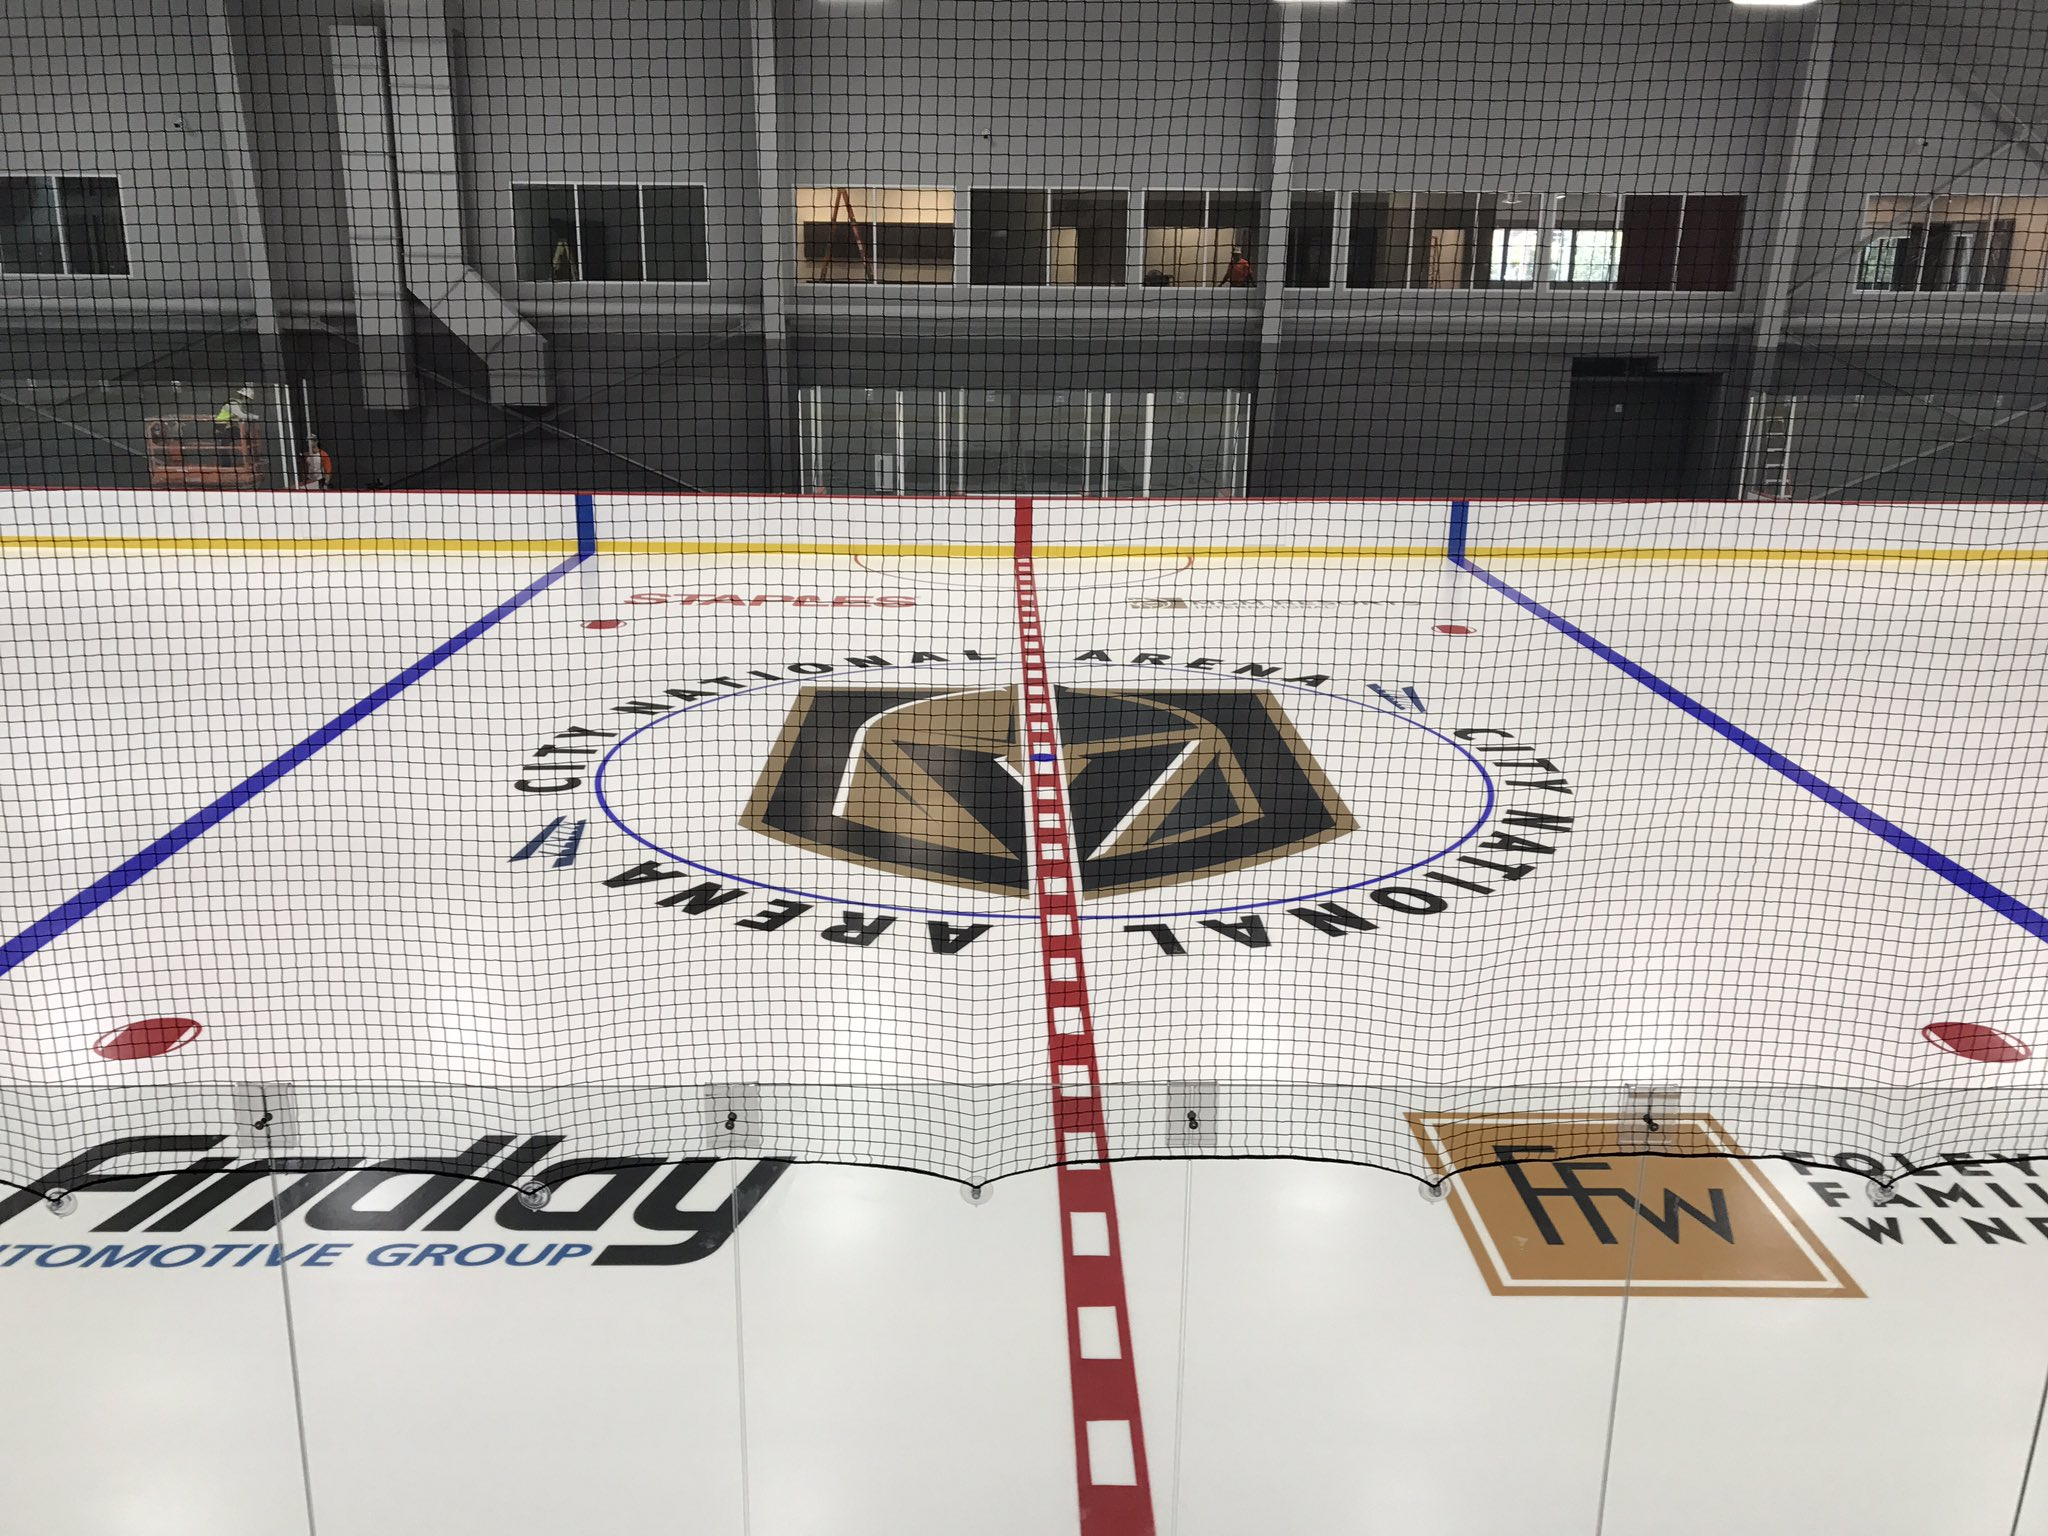 There Is A Sheet Of Ice At City National Arena In Las Vegas